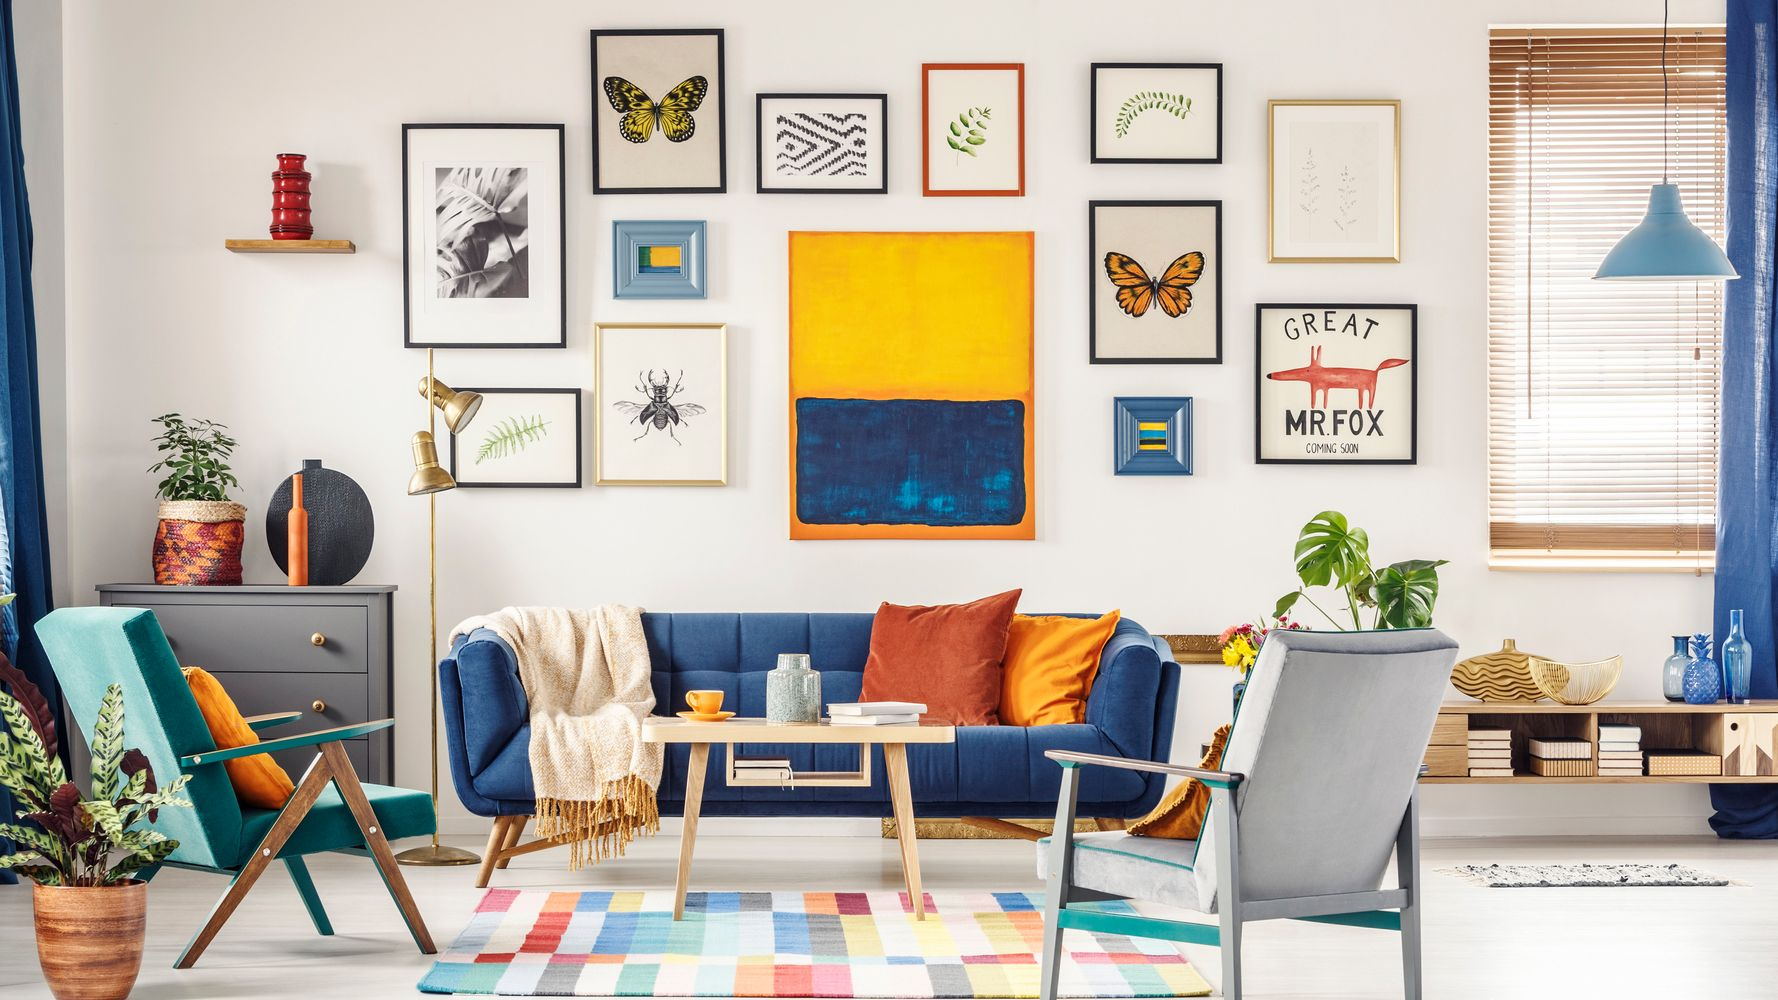 Wall art gallery: Home decorating ideas